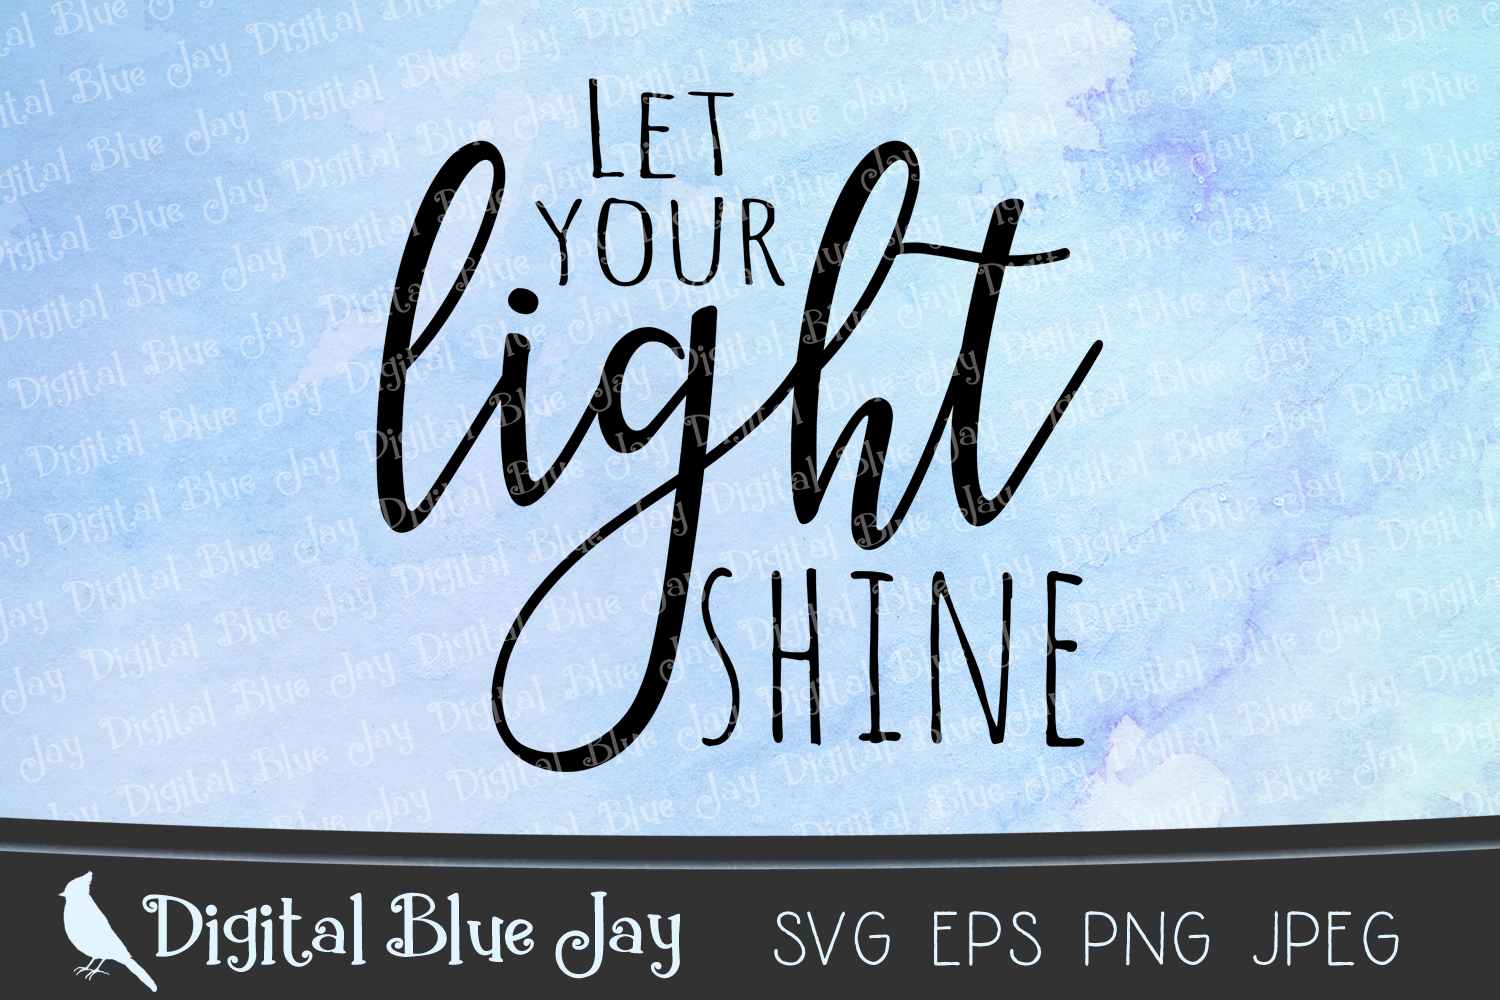 Let Your Light Shine Christian SVG PNG Cut Files example image 2